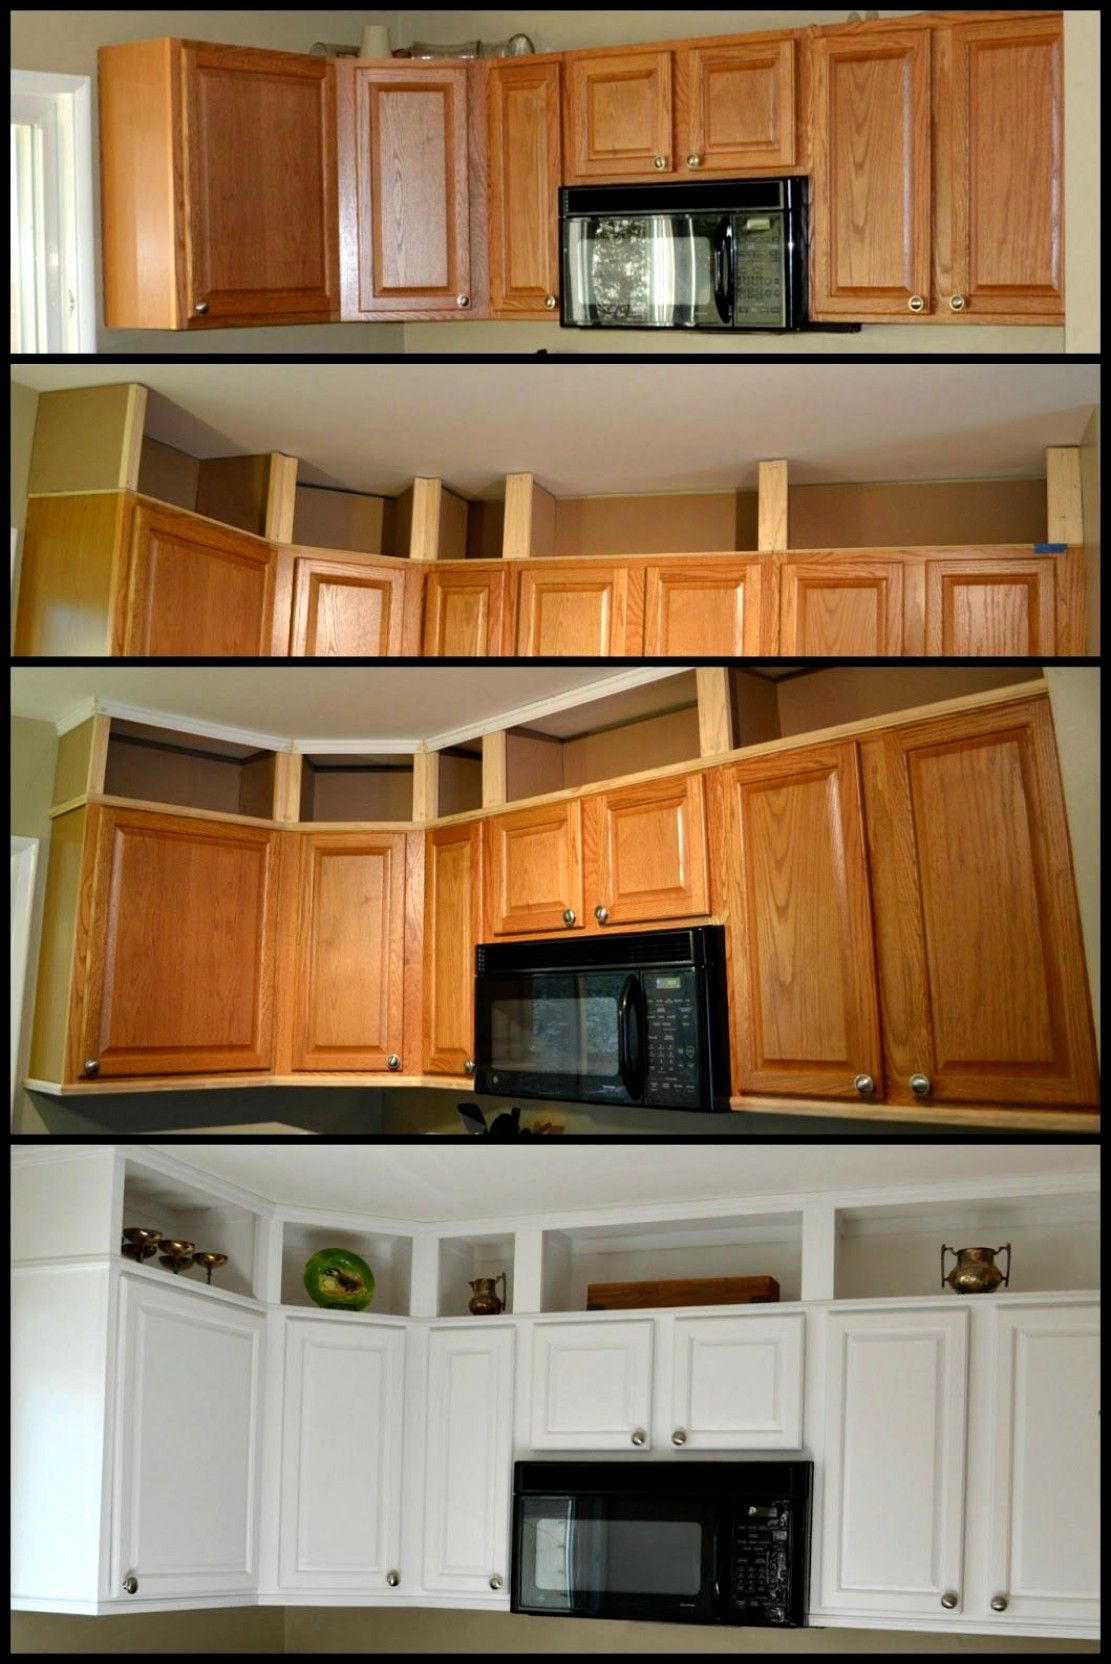 I Did It I Finished Painting The Kitchen Cabinets And It Is Done Before Easter I Had Given Myself This Arbitrary Deadline Diy Kitchen Cabinets To Ceiling Kitchen Redo